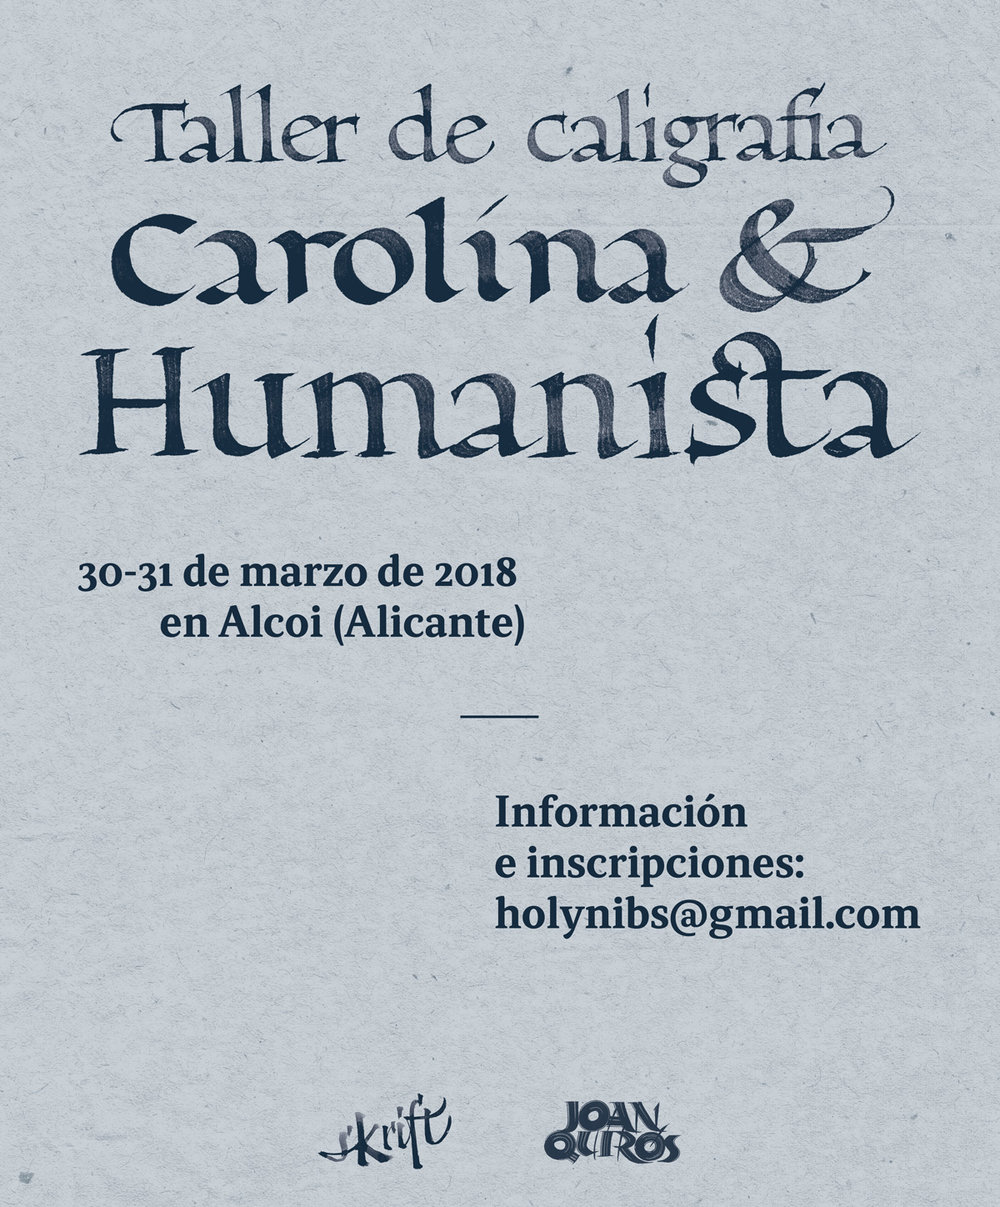 Workshop-caligrafia-Carolina-Humanista-Alcoi-Joan-Quiros.jpg